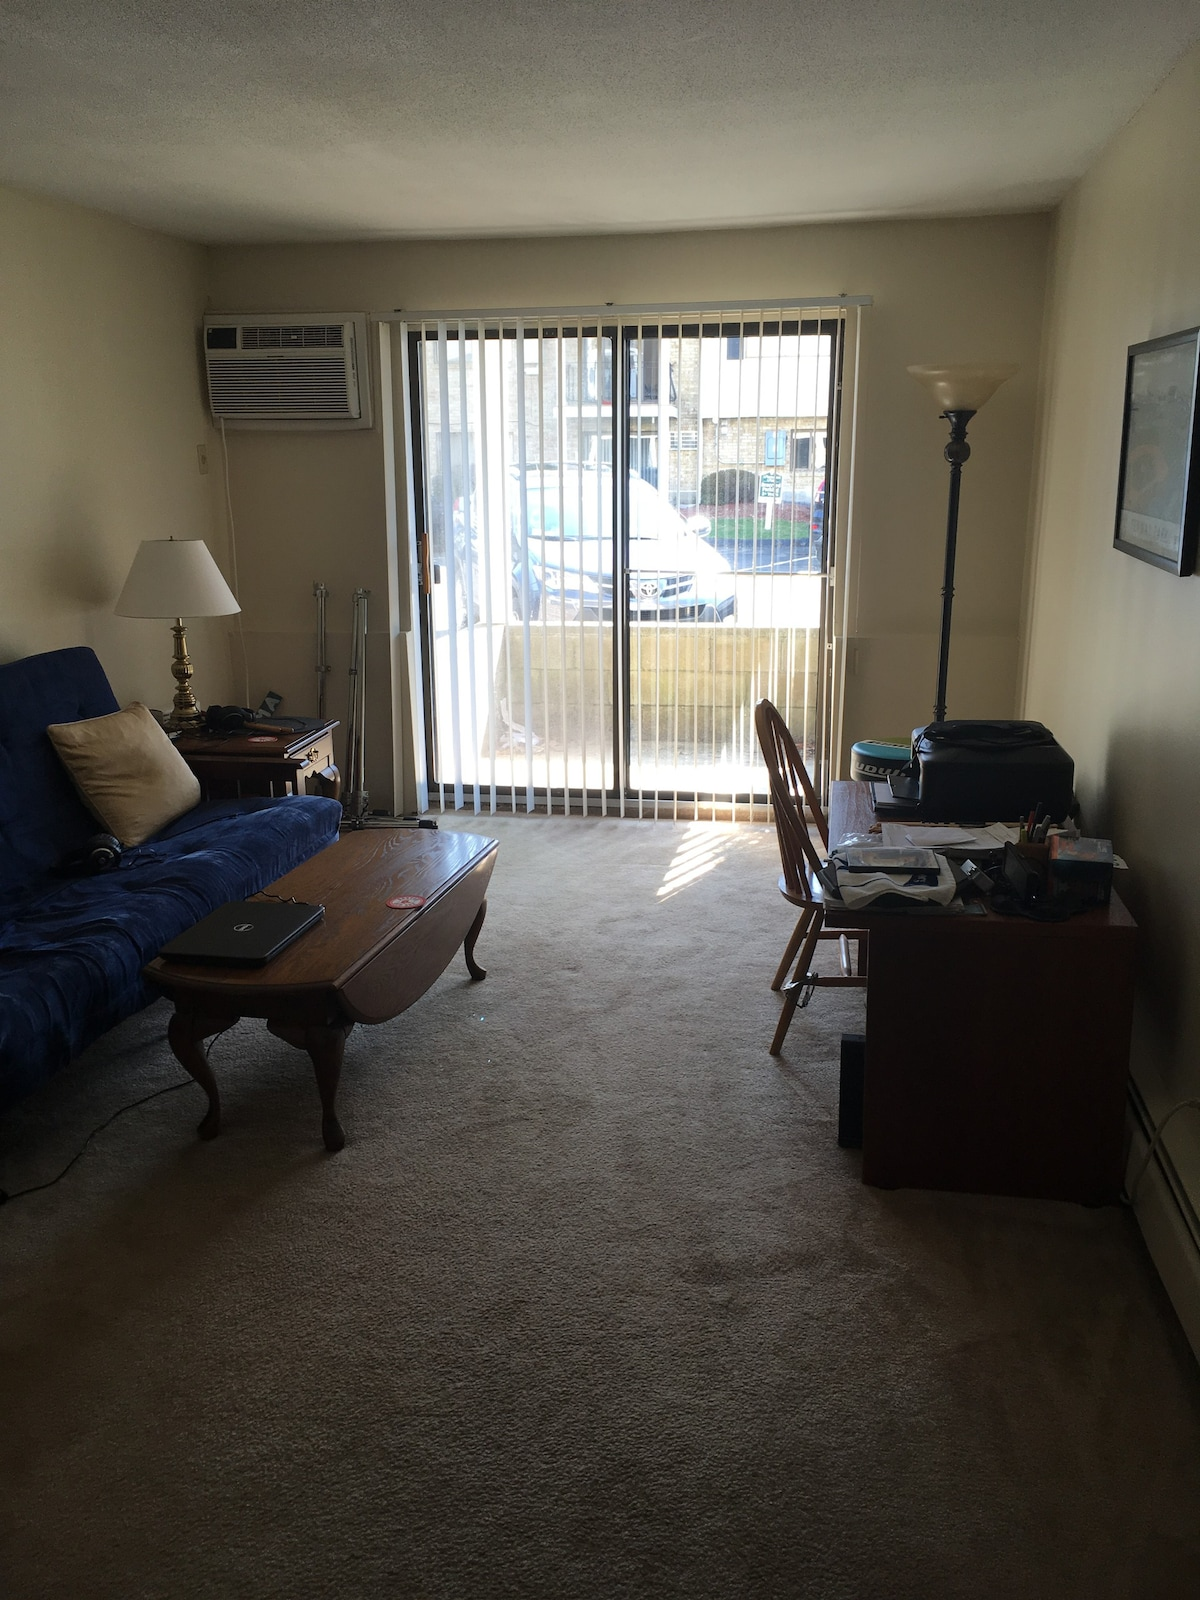 1 Bedroom Apartments Worcester Ma Apartment Layout With